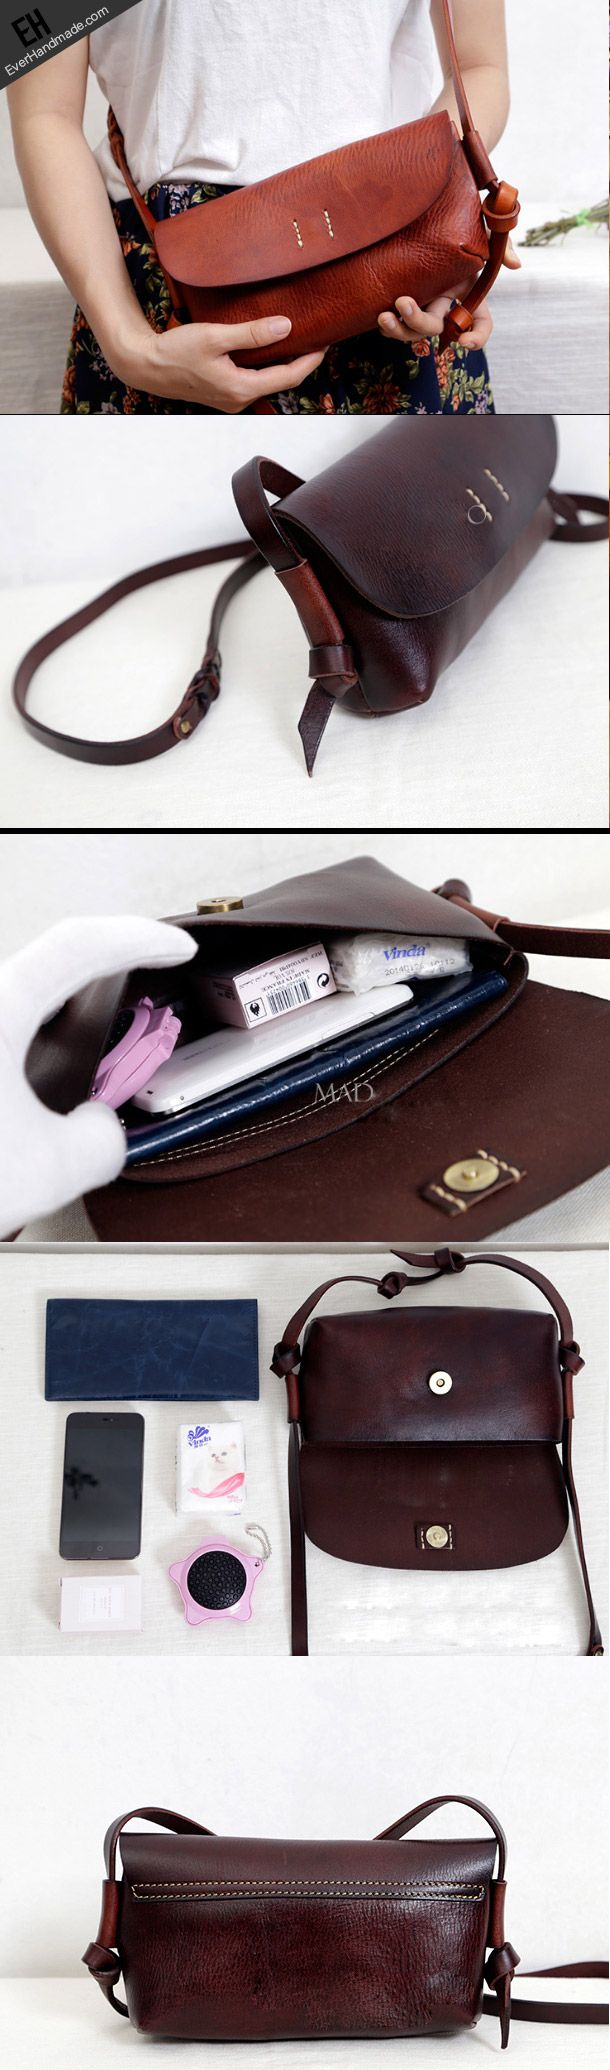 48 best Leather bags images on Pinterest | Leather bags, Bags and ...